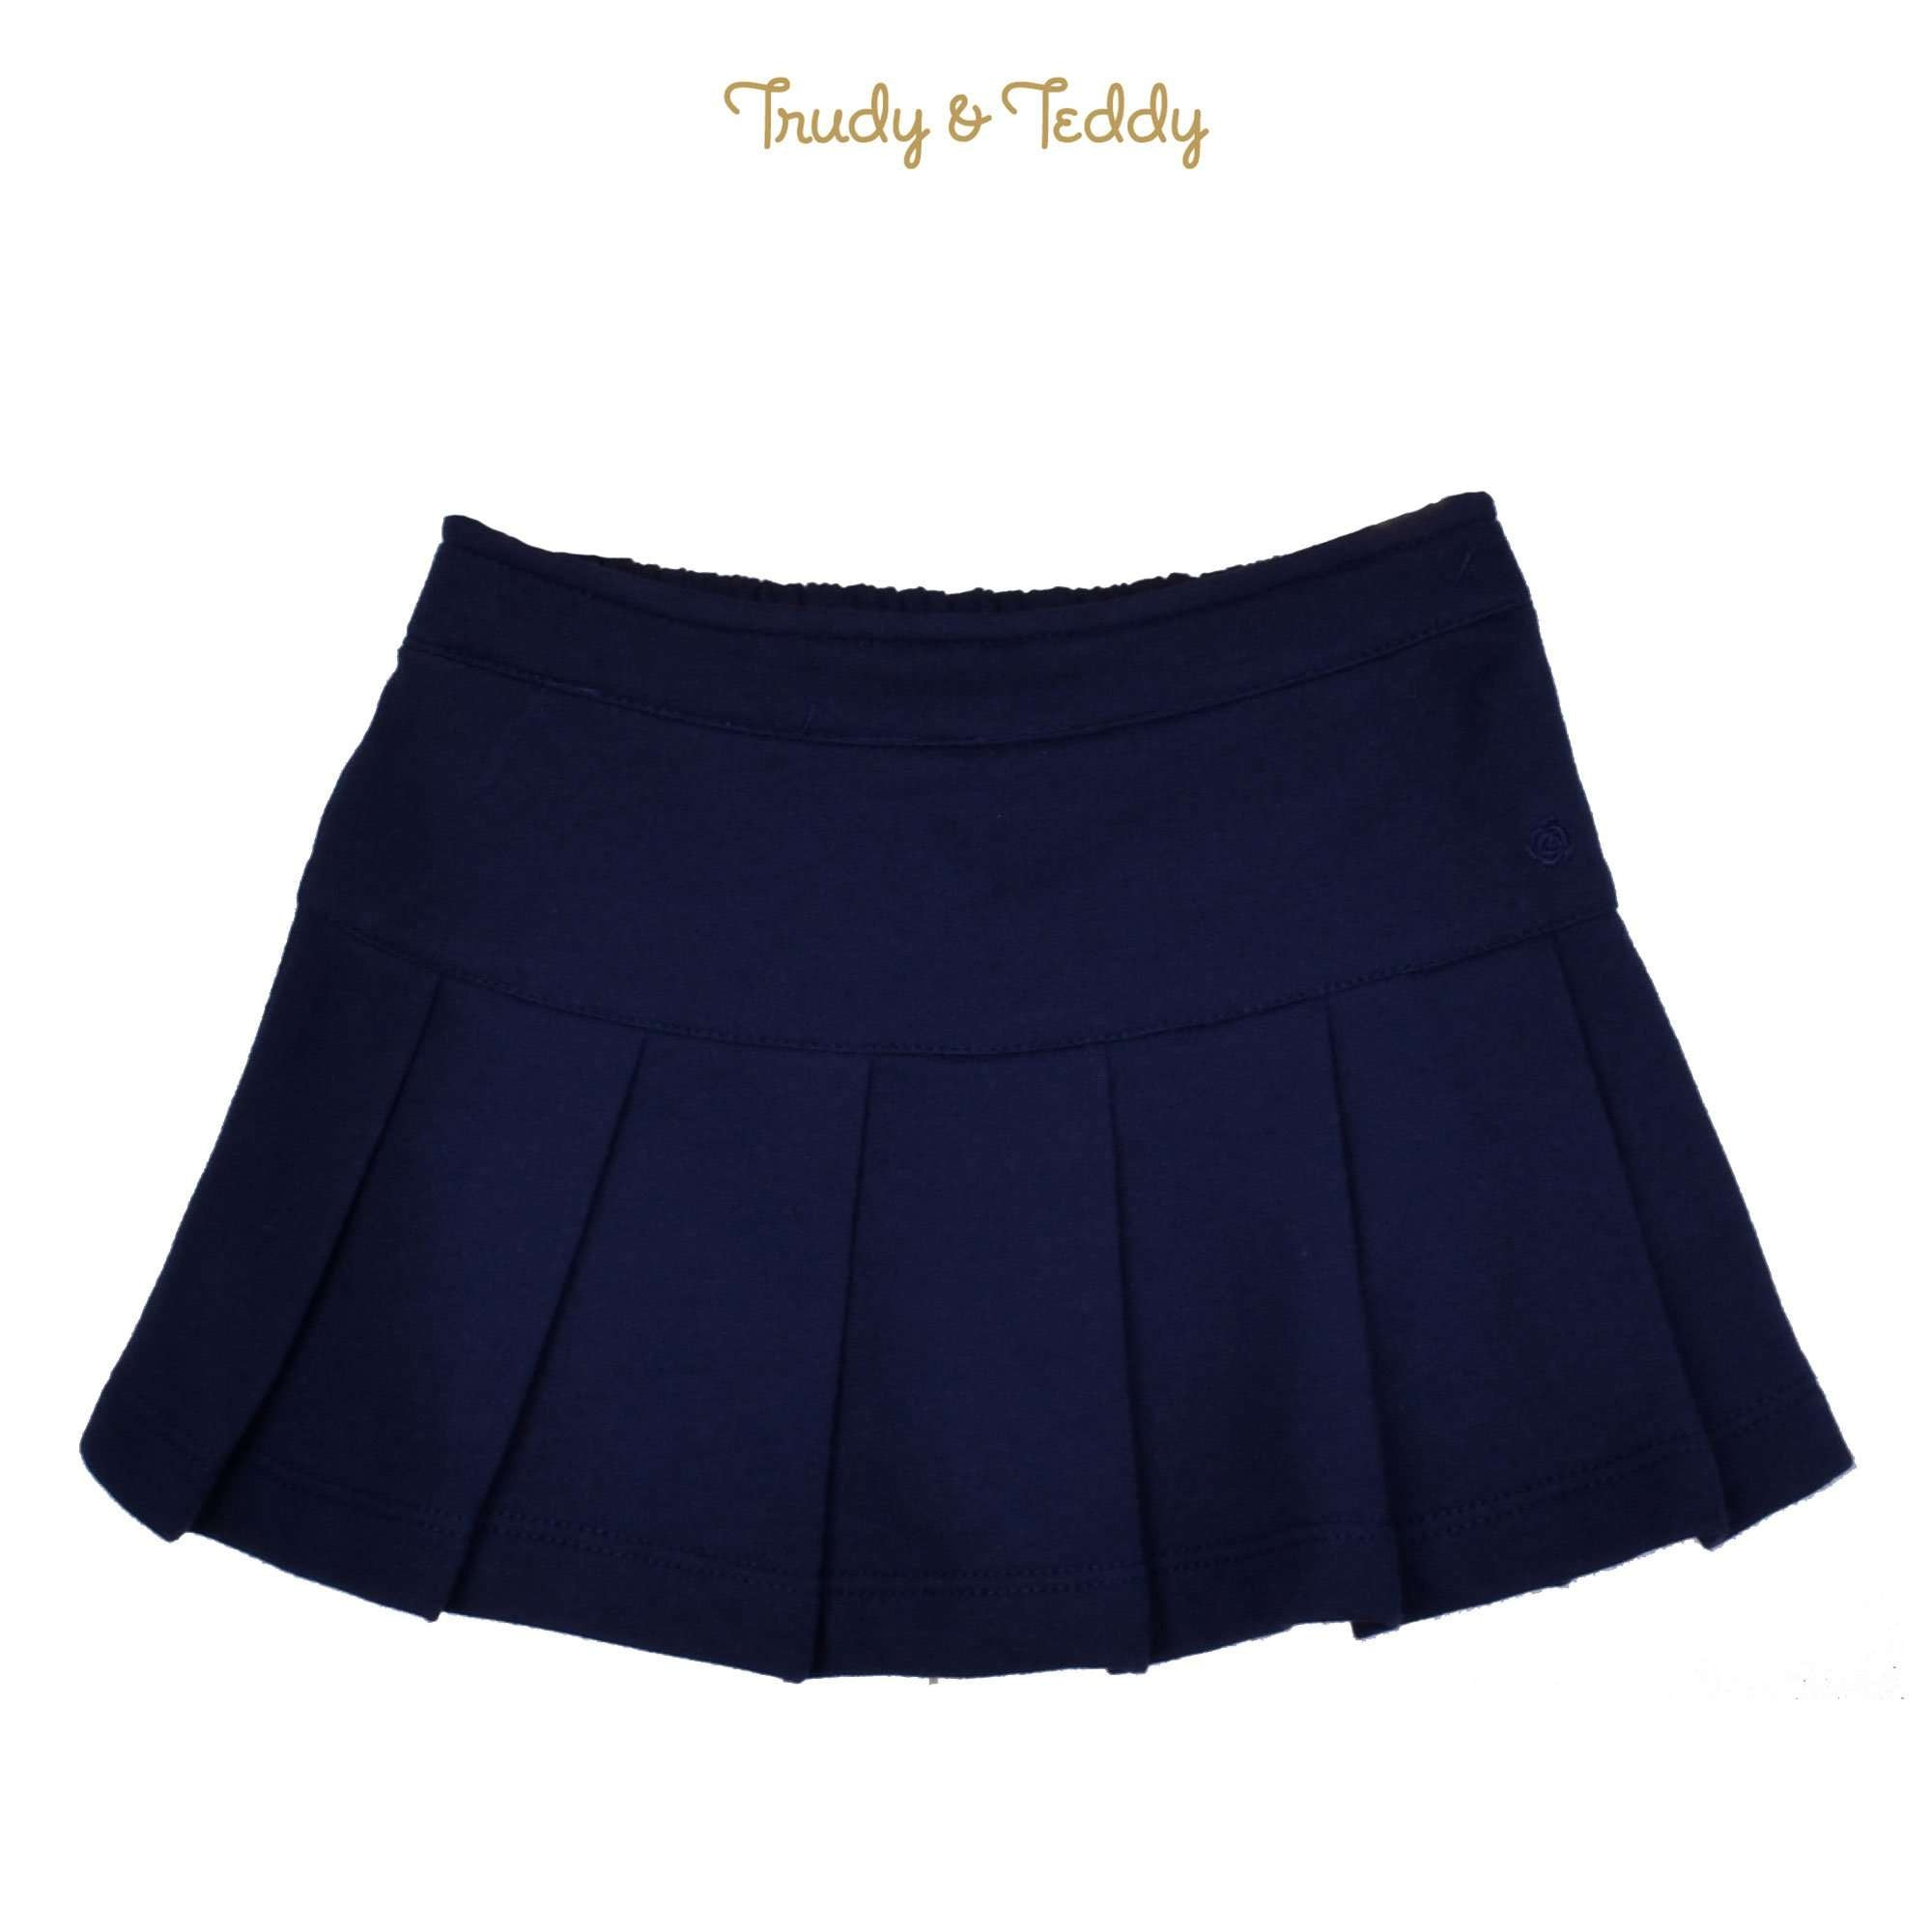 Trudy & Teddy Toddler Girl Knit Skirt 825034-291 : Buy Trudy & Teddy online at CMG.MY